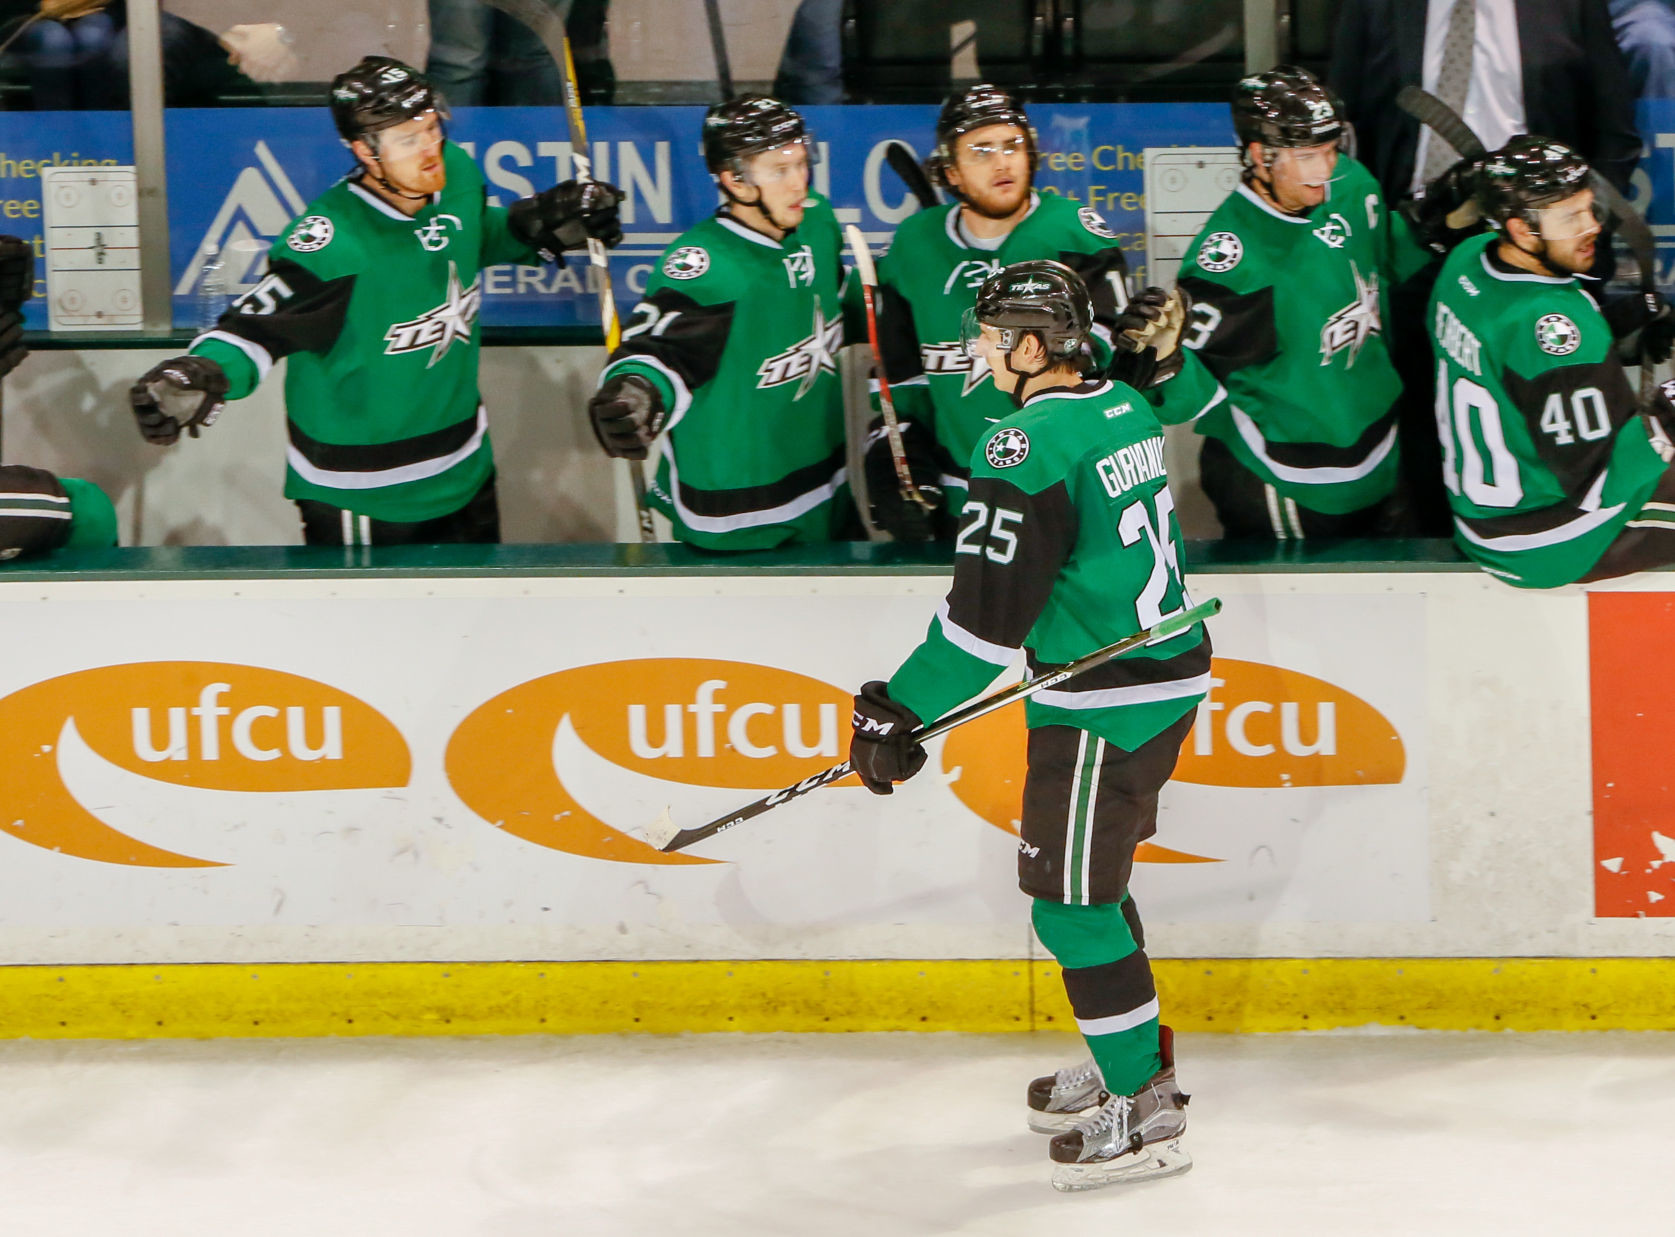 Denis Gurianov scored his second straight game-winning goal and the Texas Stars beat the Manitoba Moose 4-3 on Wednesday night.